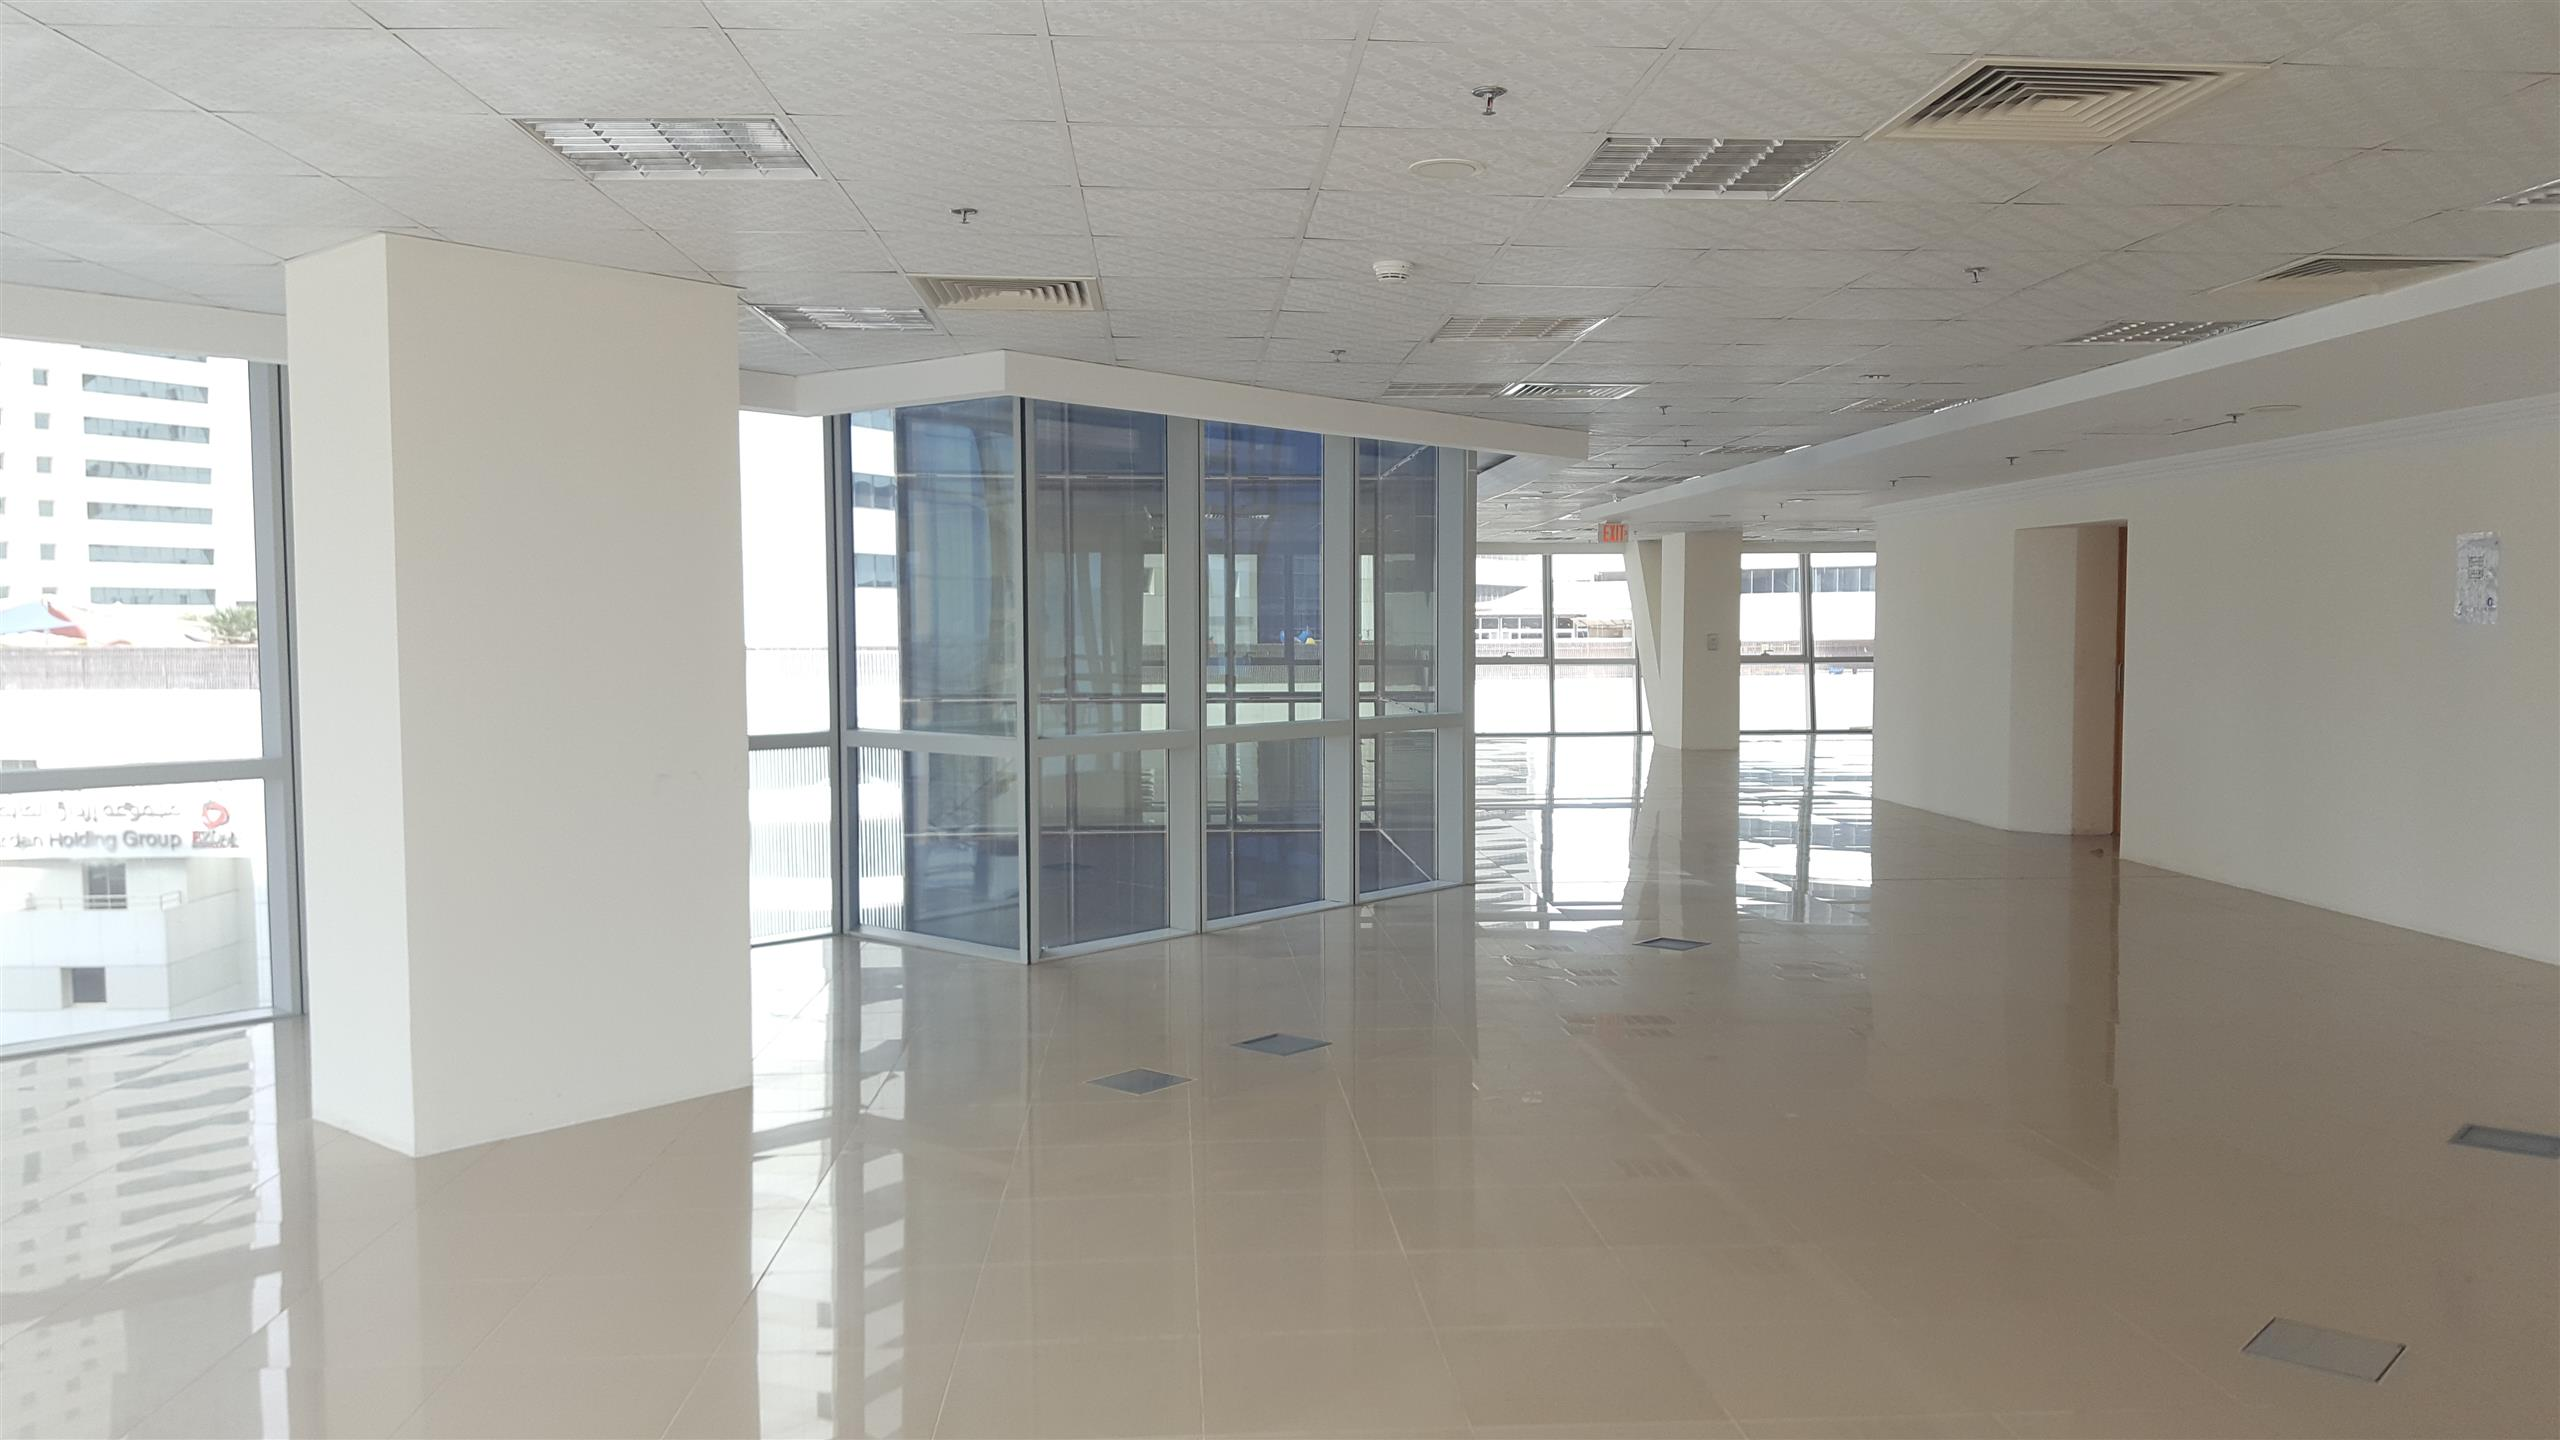 180 Sqm Brand New Office space for rent at West Bay | Qatar Living